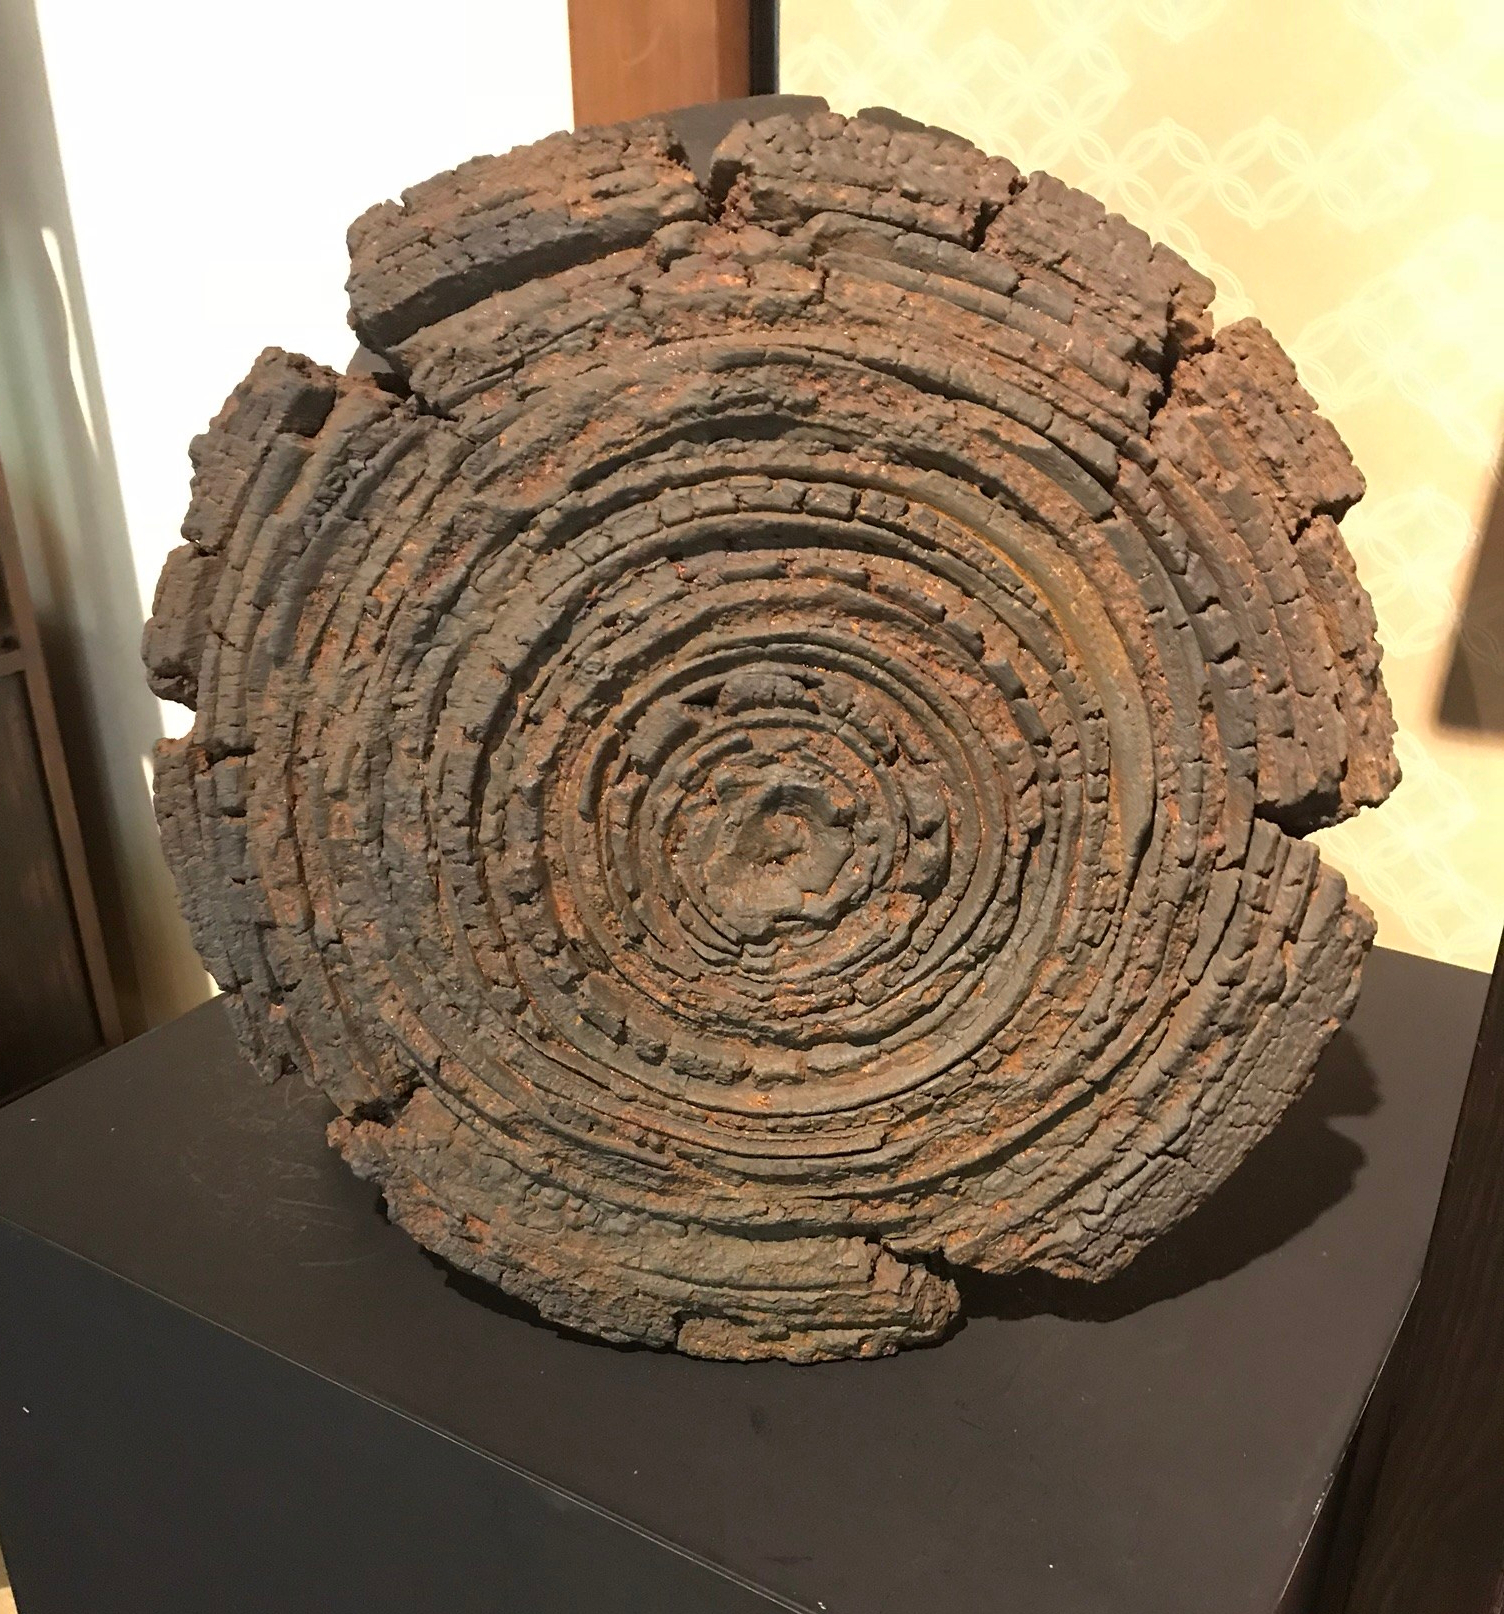 An important work by Akiyama Yo, Sharin–Wheel-T-175–Akiyama. Akiyama (b.1953) is widely considered to be one of the greatest conceptual ceramic artists living today,